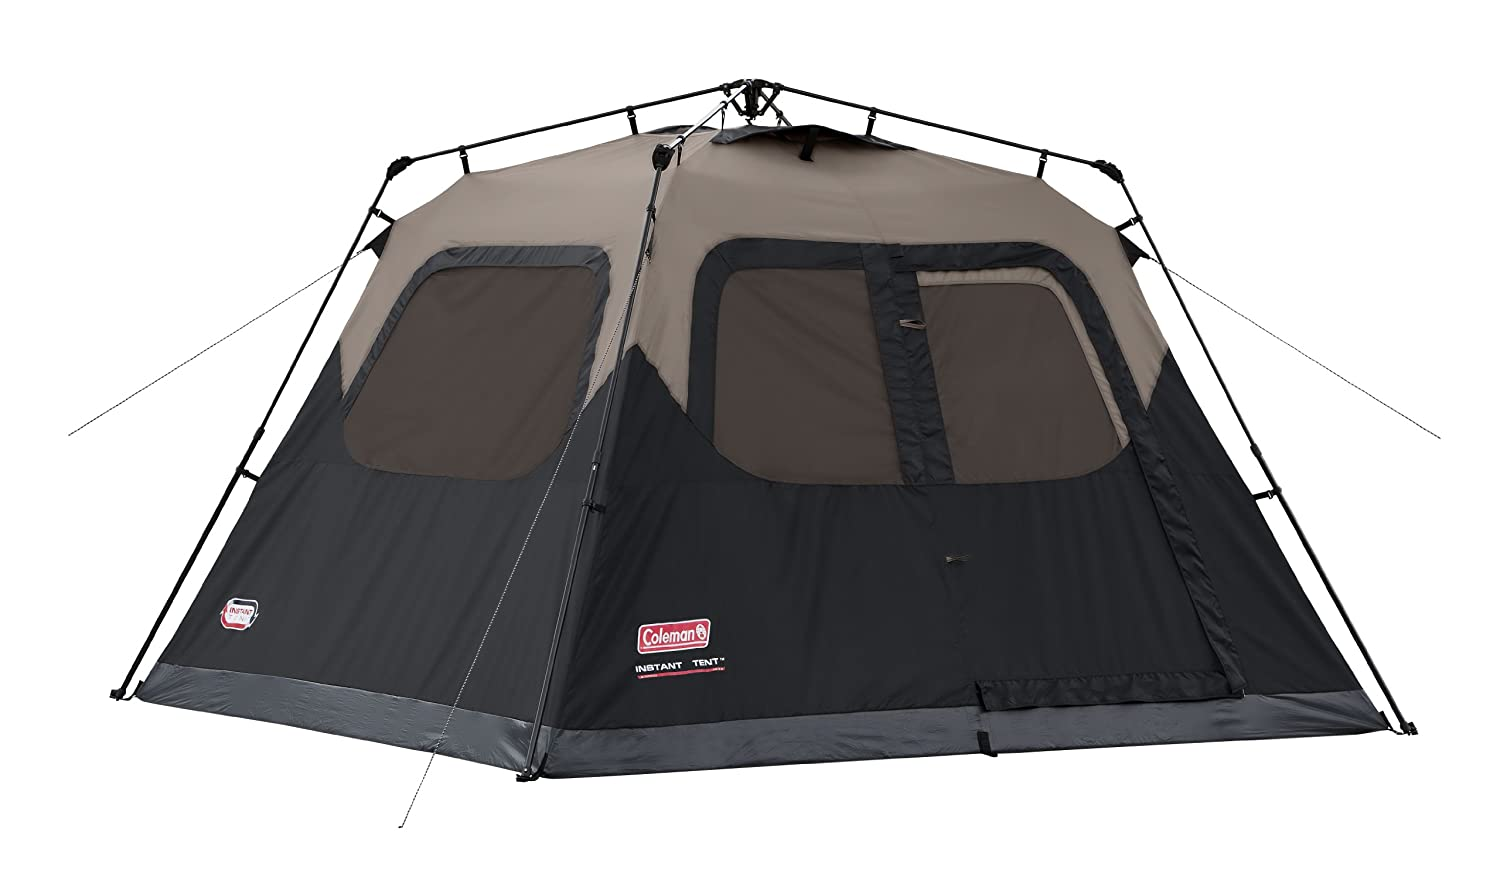 Coleman 6-Person Instant Cabin – Sturdy but dark